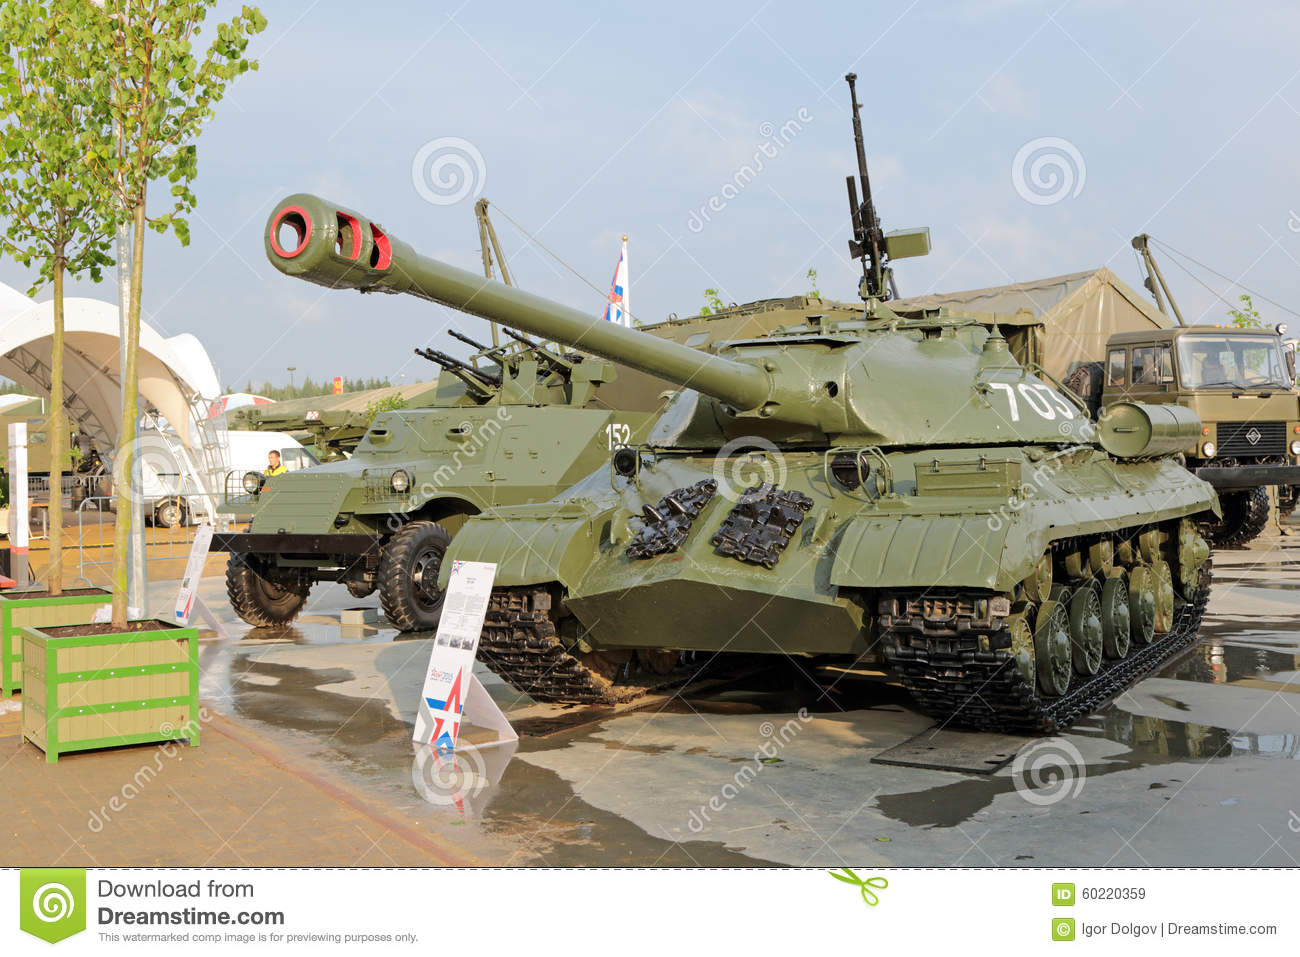 ... ARMY-2015 in military-Patriotic park. The IS-3 Soviet heavy tank